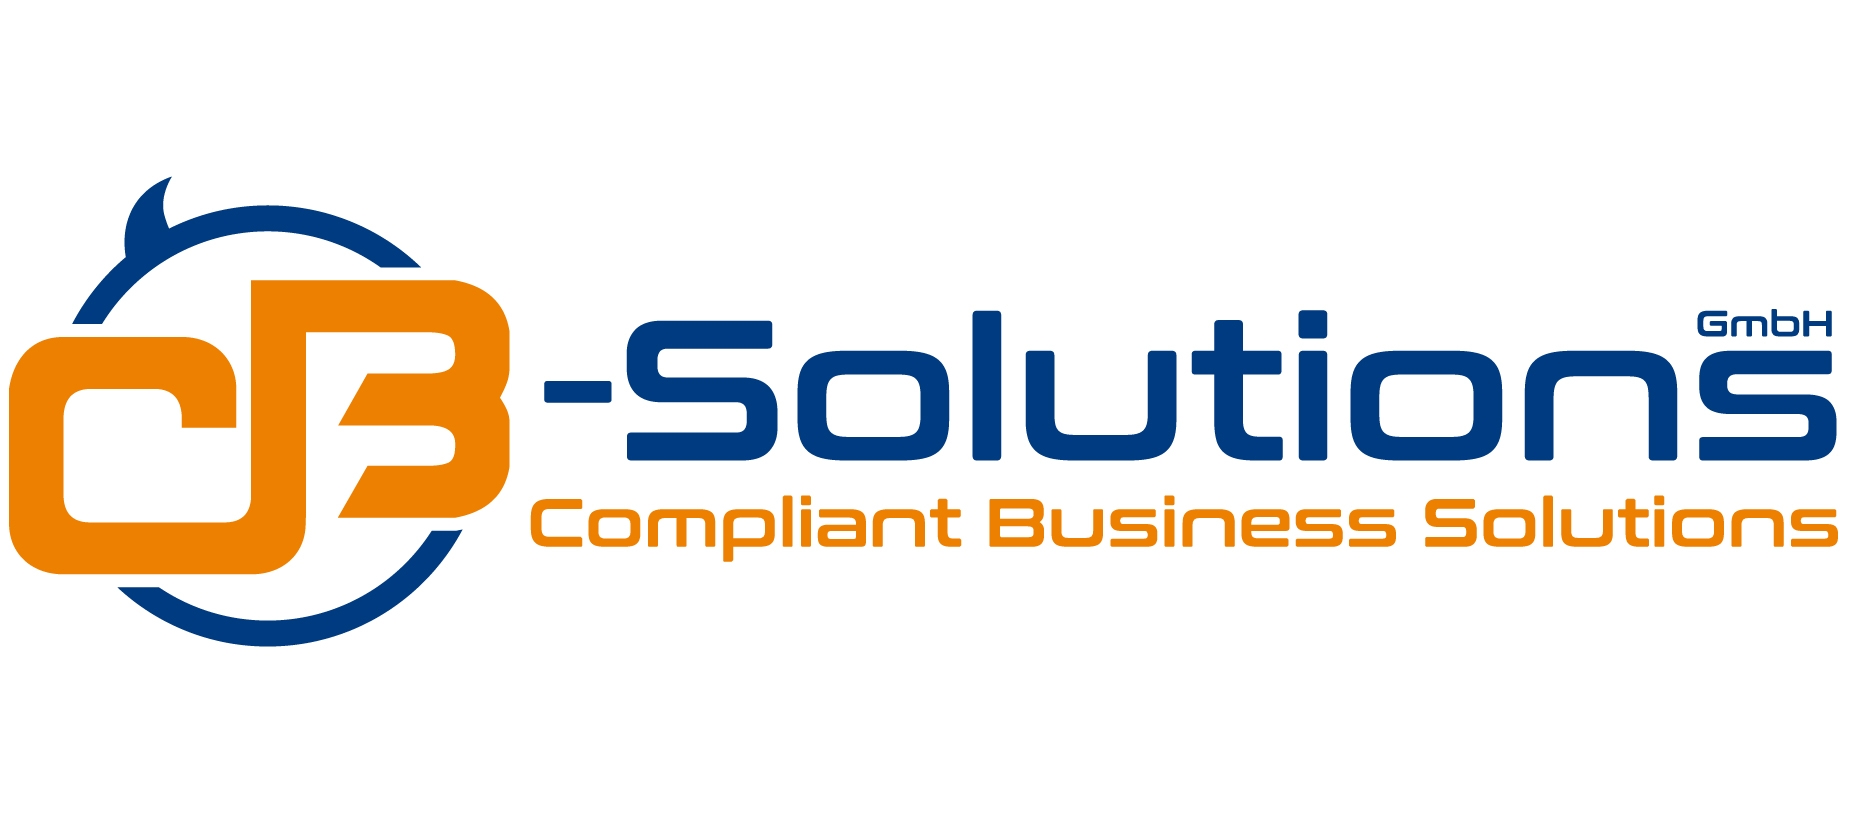 Logo Compliant Business Solutions GmbH